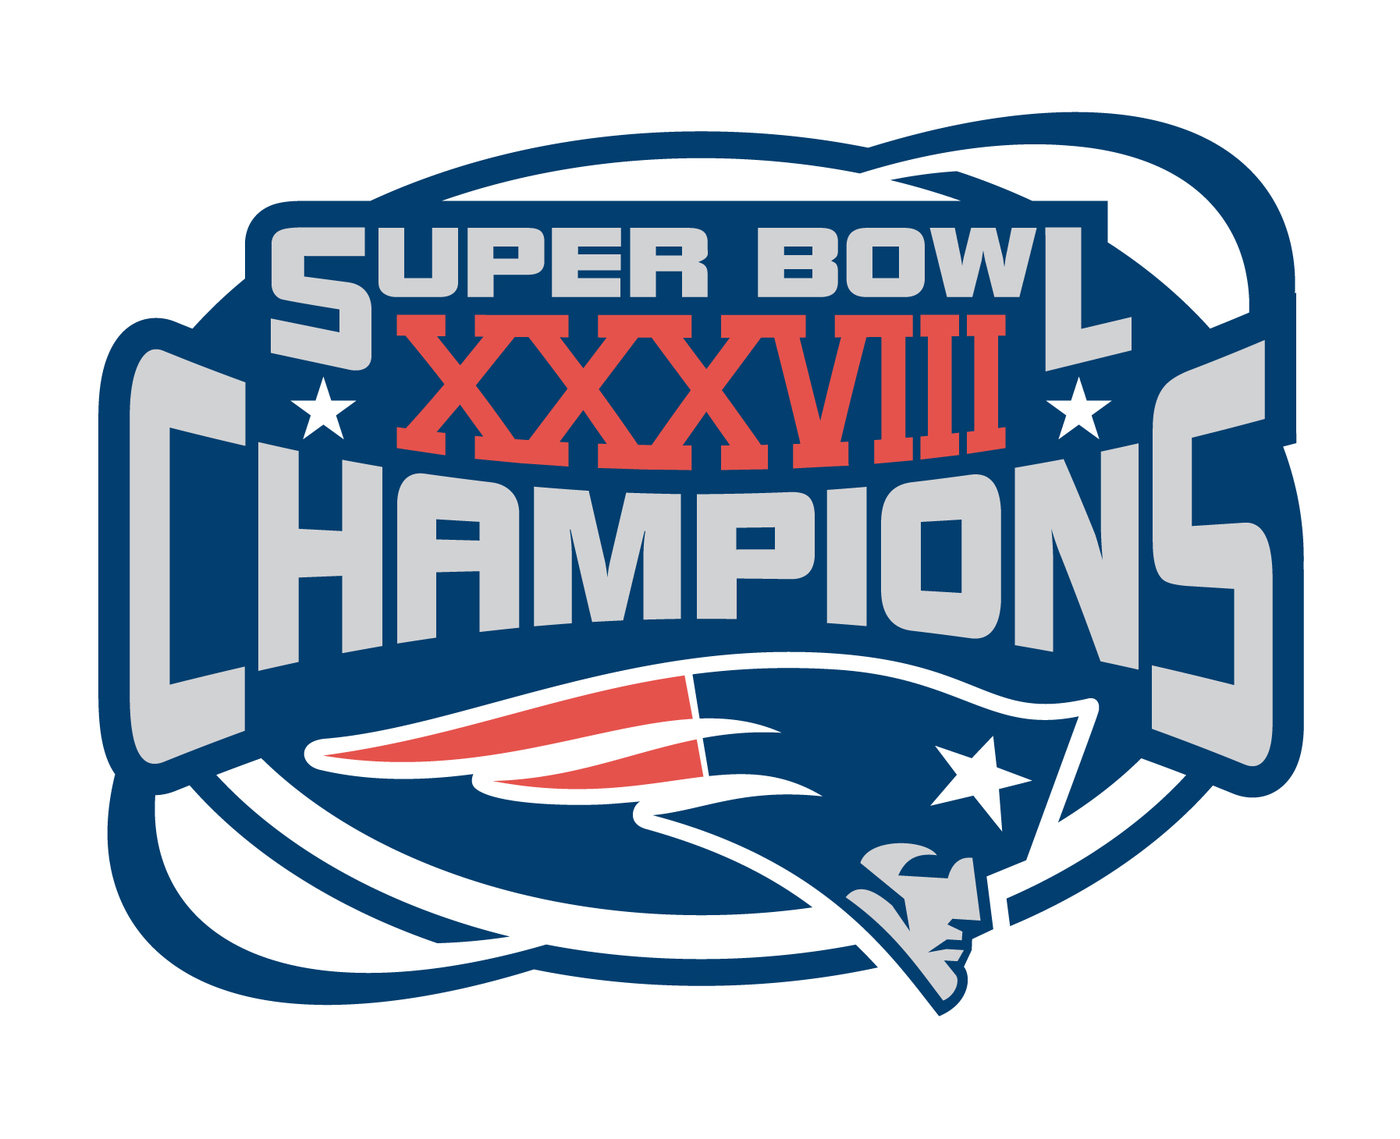 Patriot Super Bowl Logos - 12.000 vector logos